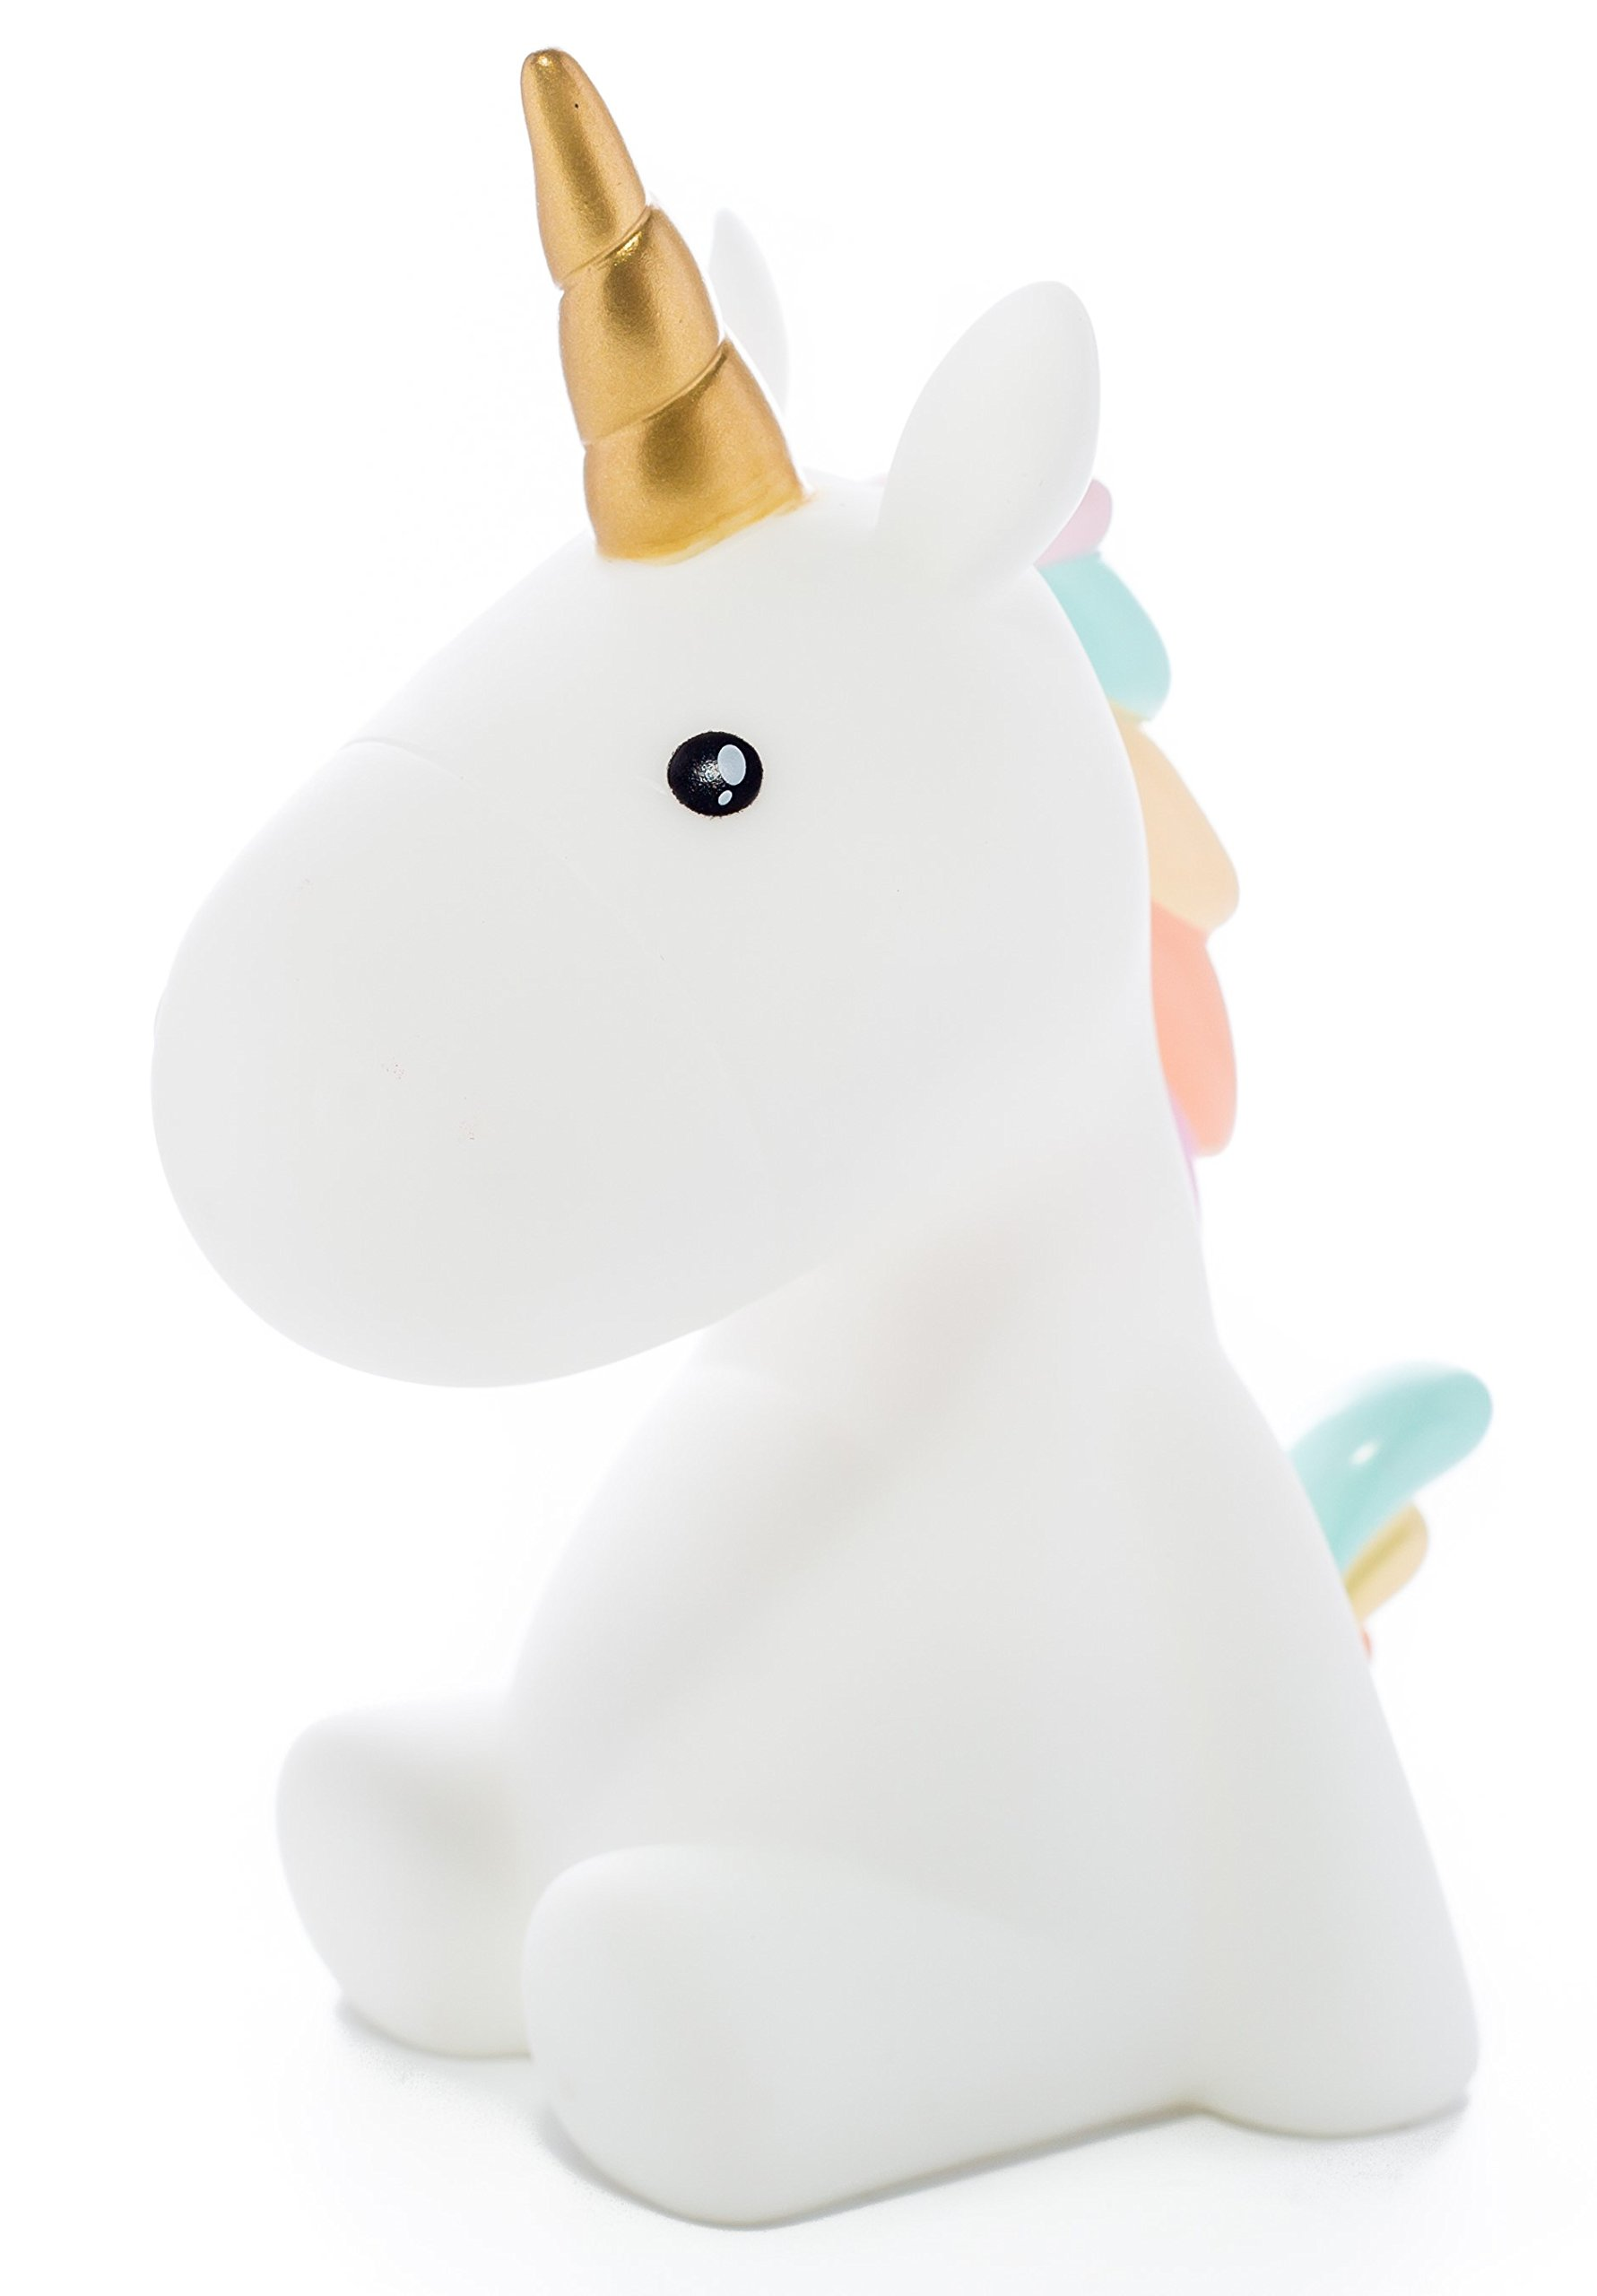 RMEX Unicorn Nightlight Warm White LED 15min Timer - Soft Rainbow Color